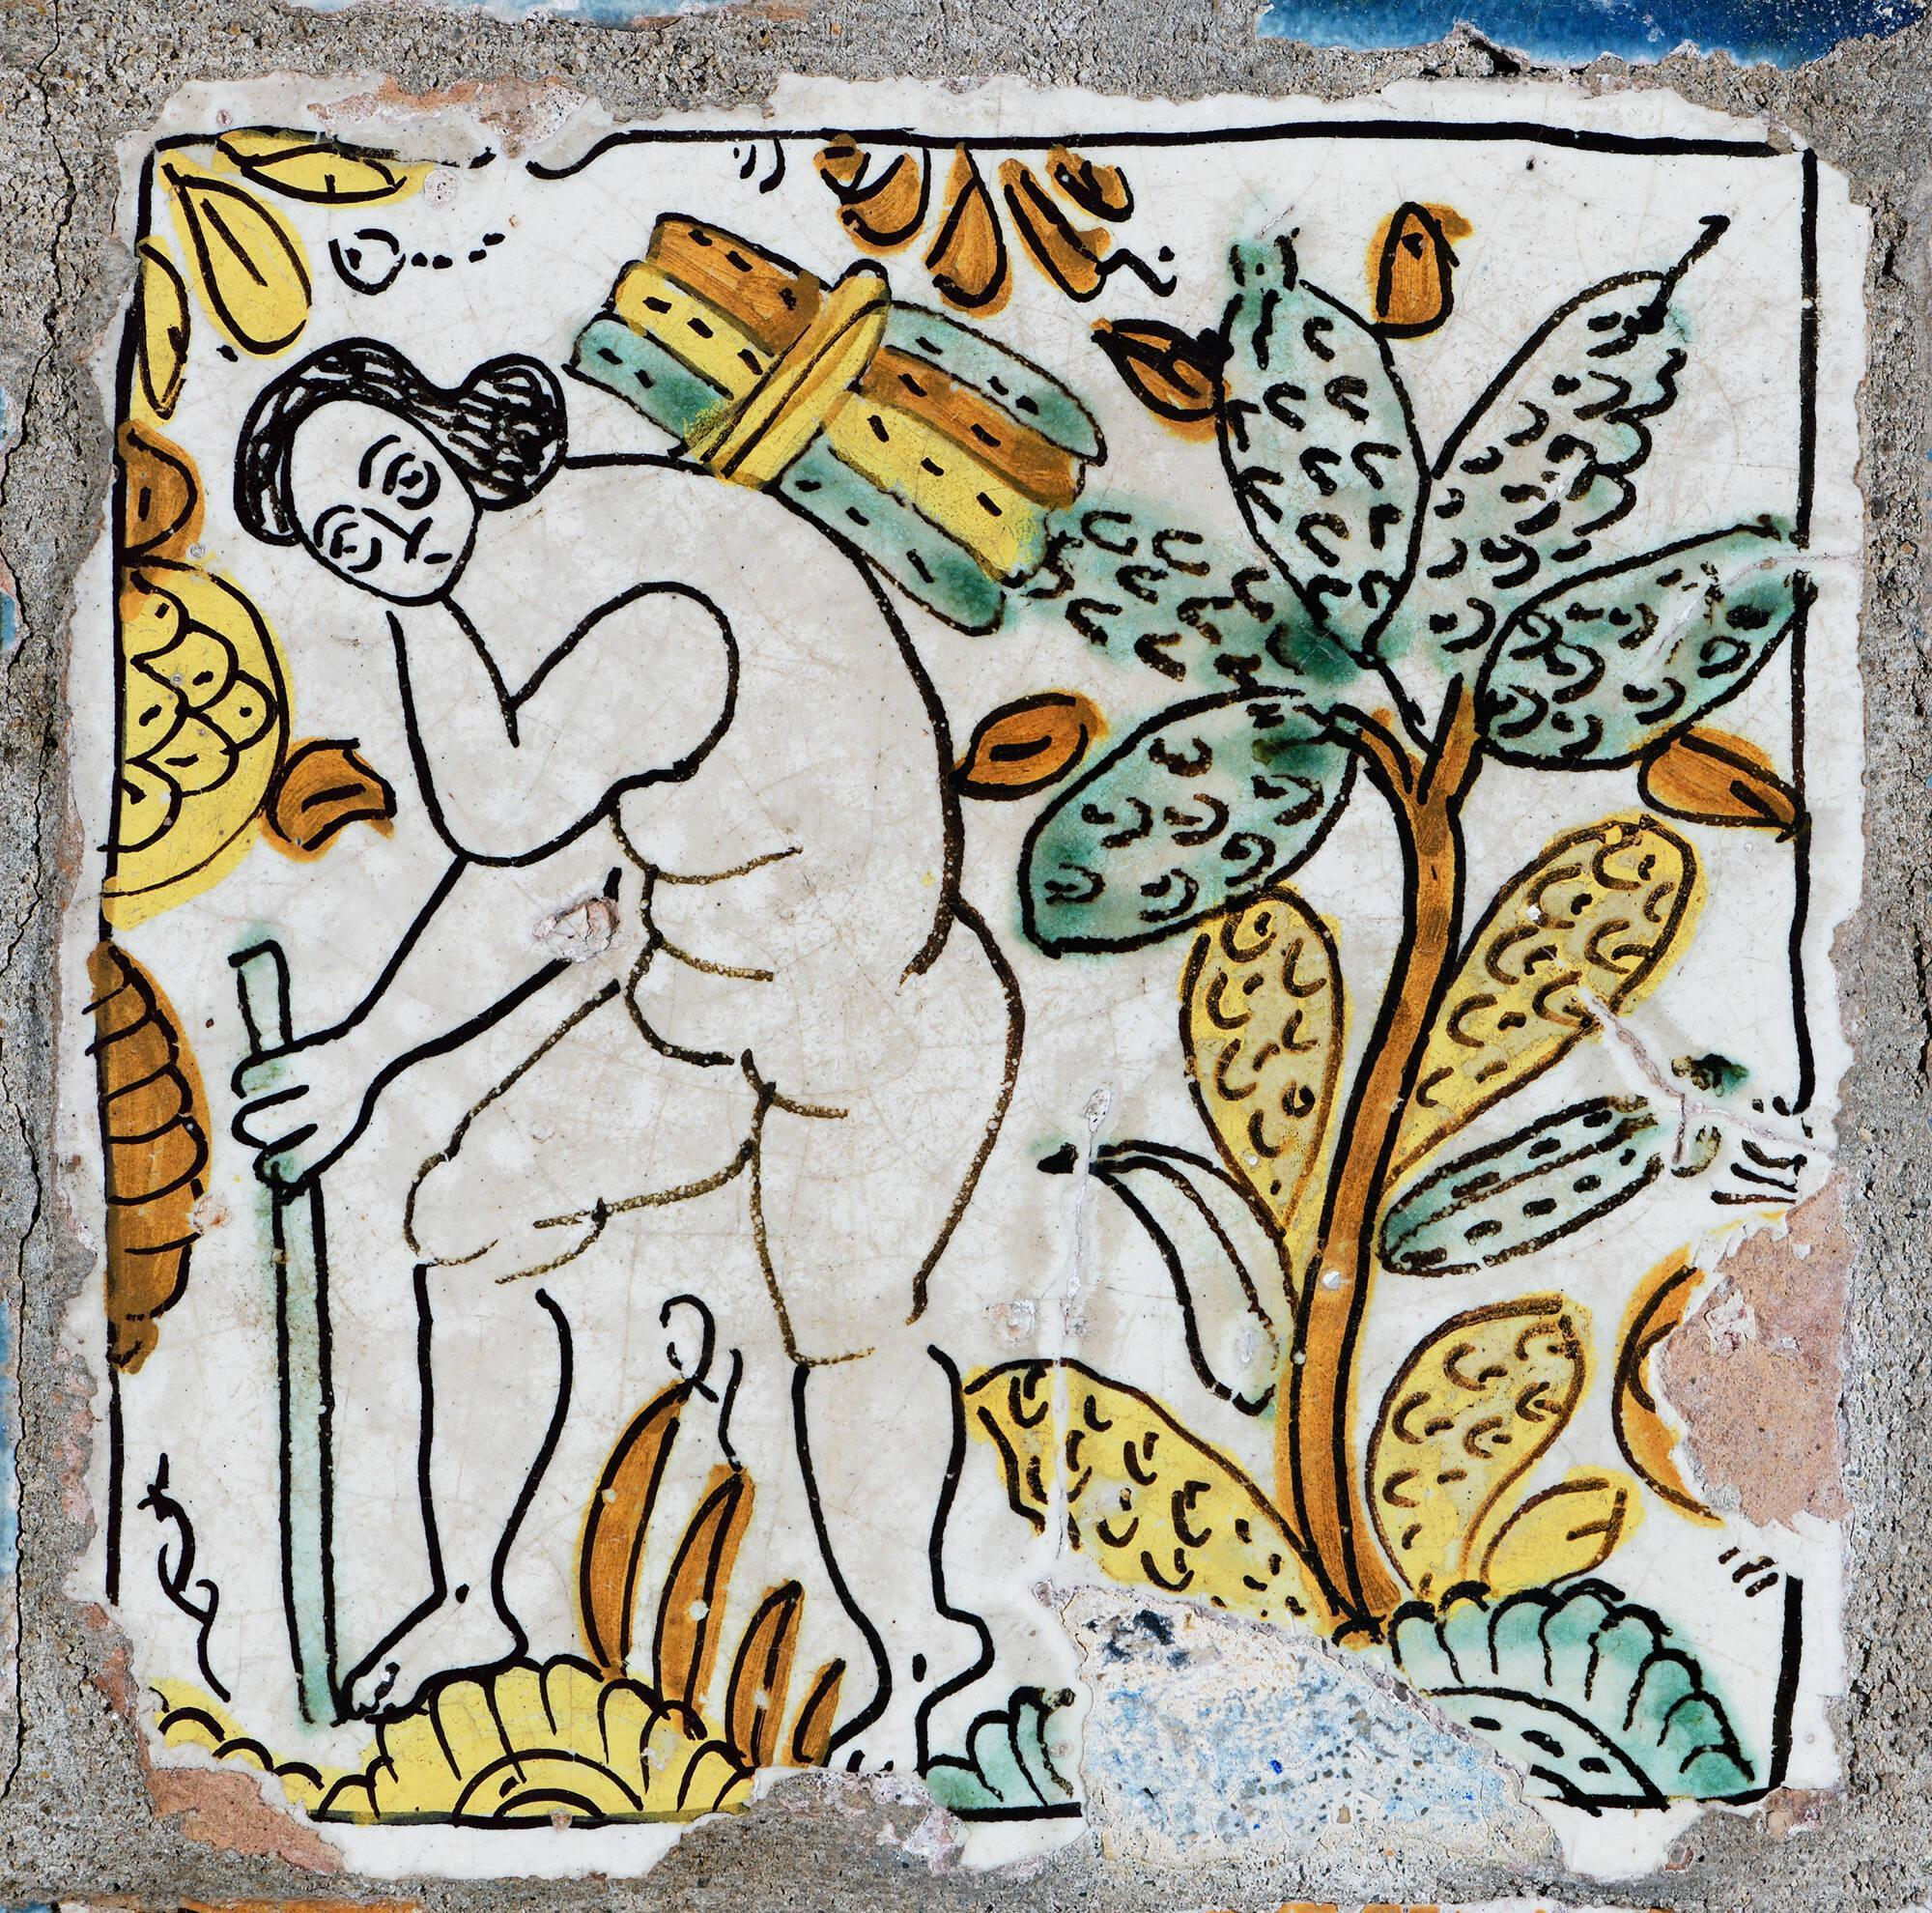 A naked human painted on a tile.